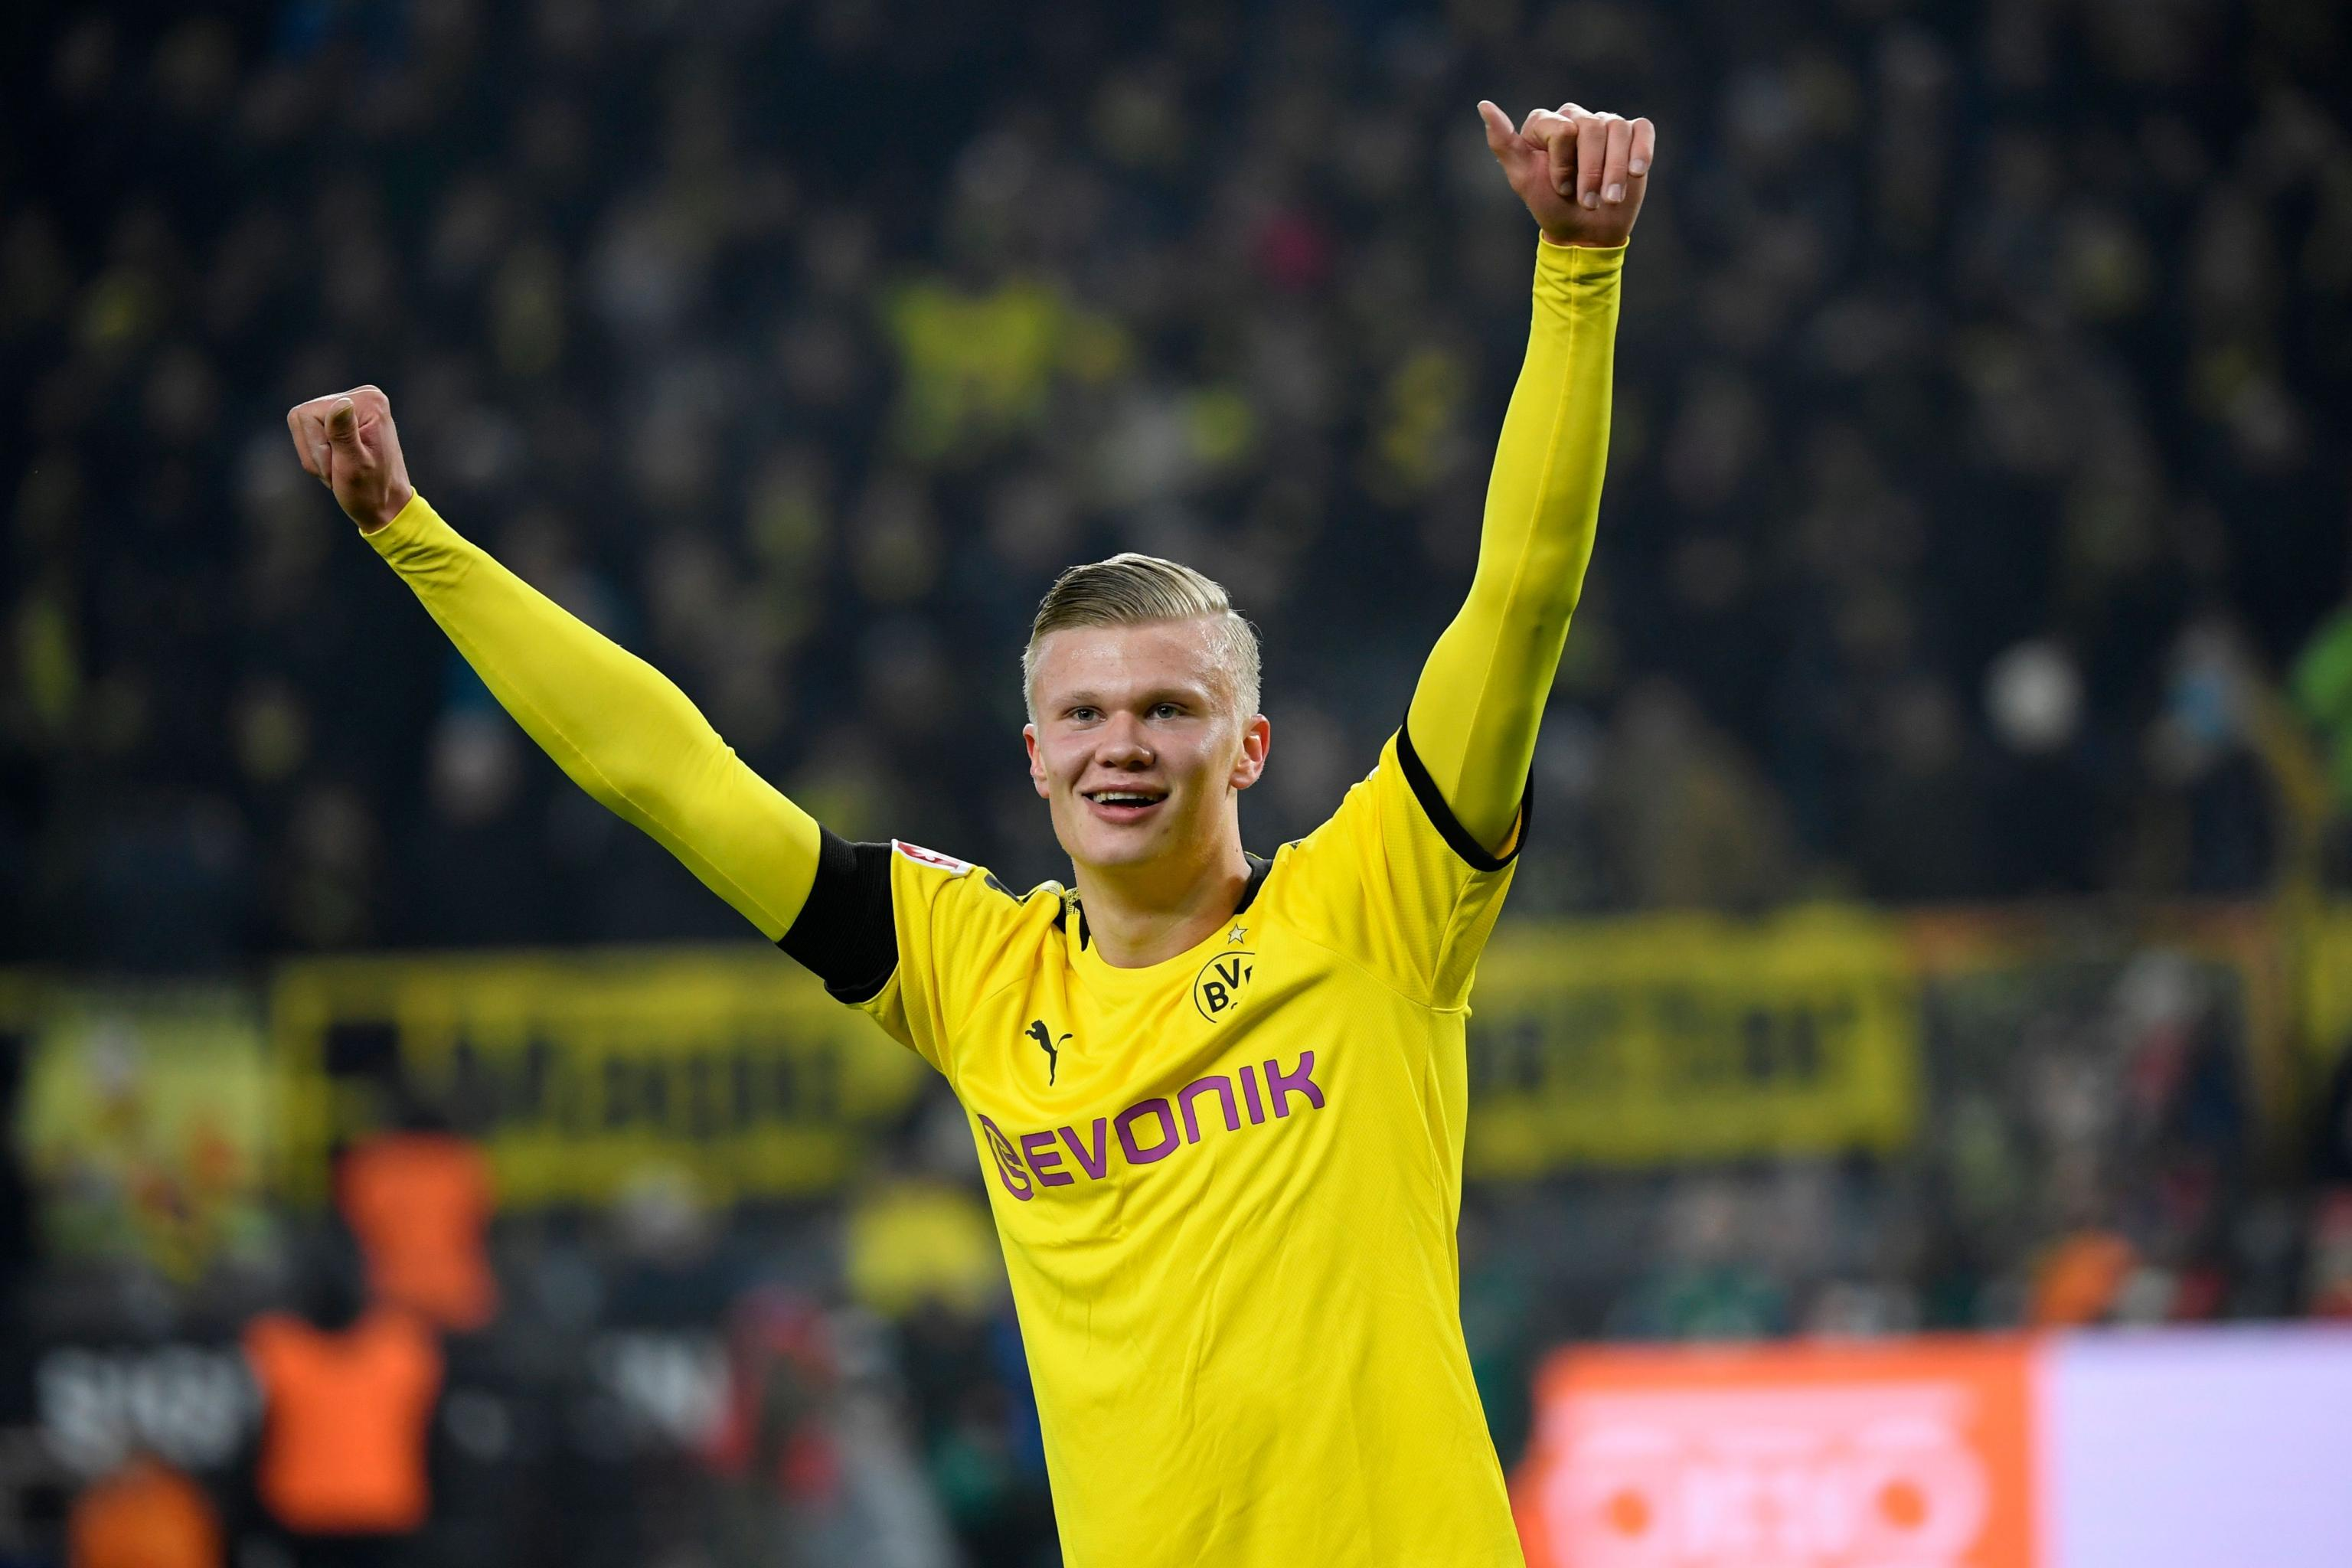 Erling Haaland Scores Twice For Borussia Dortmund Breaks Bundesliga Record Bleacher Report Latest News Videos And Highlights